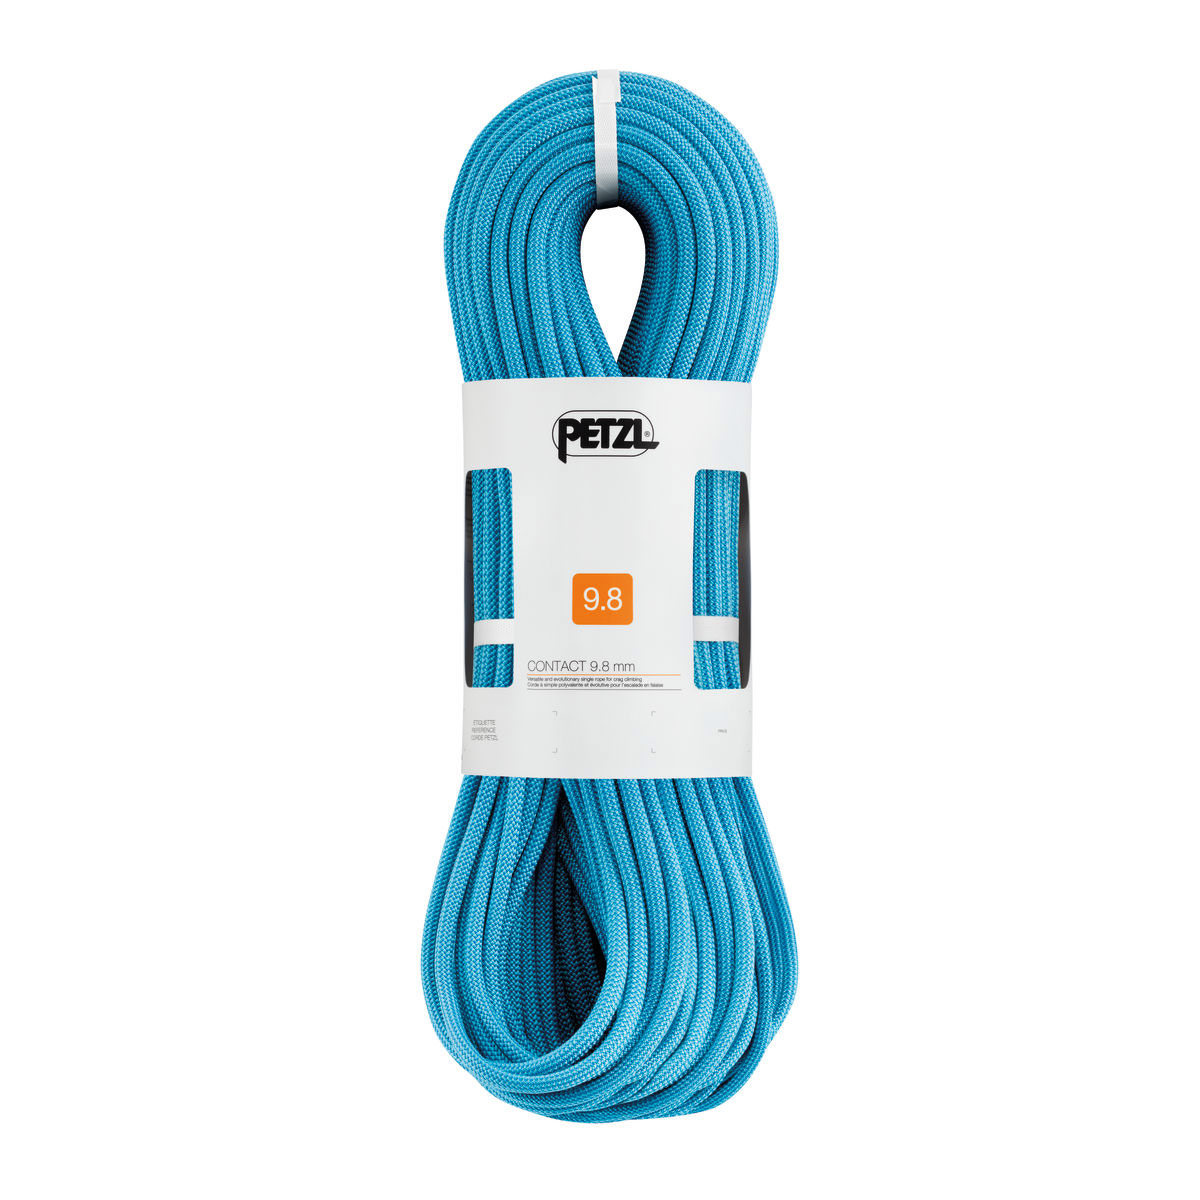 Contact 9.8 mm Rope 60m Turquoise